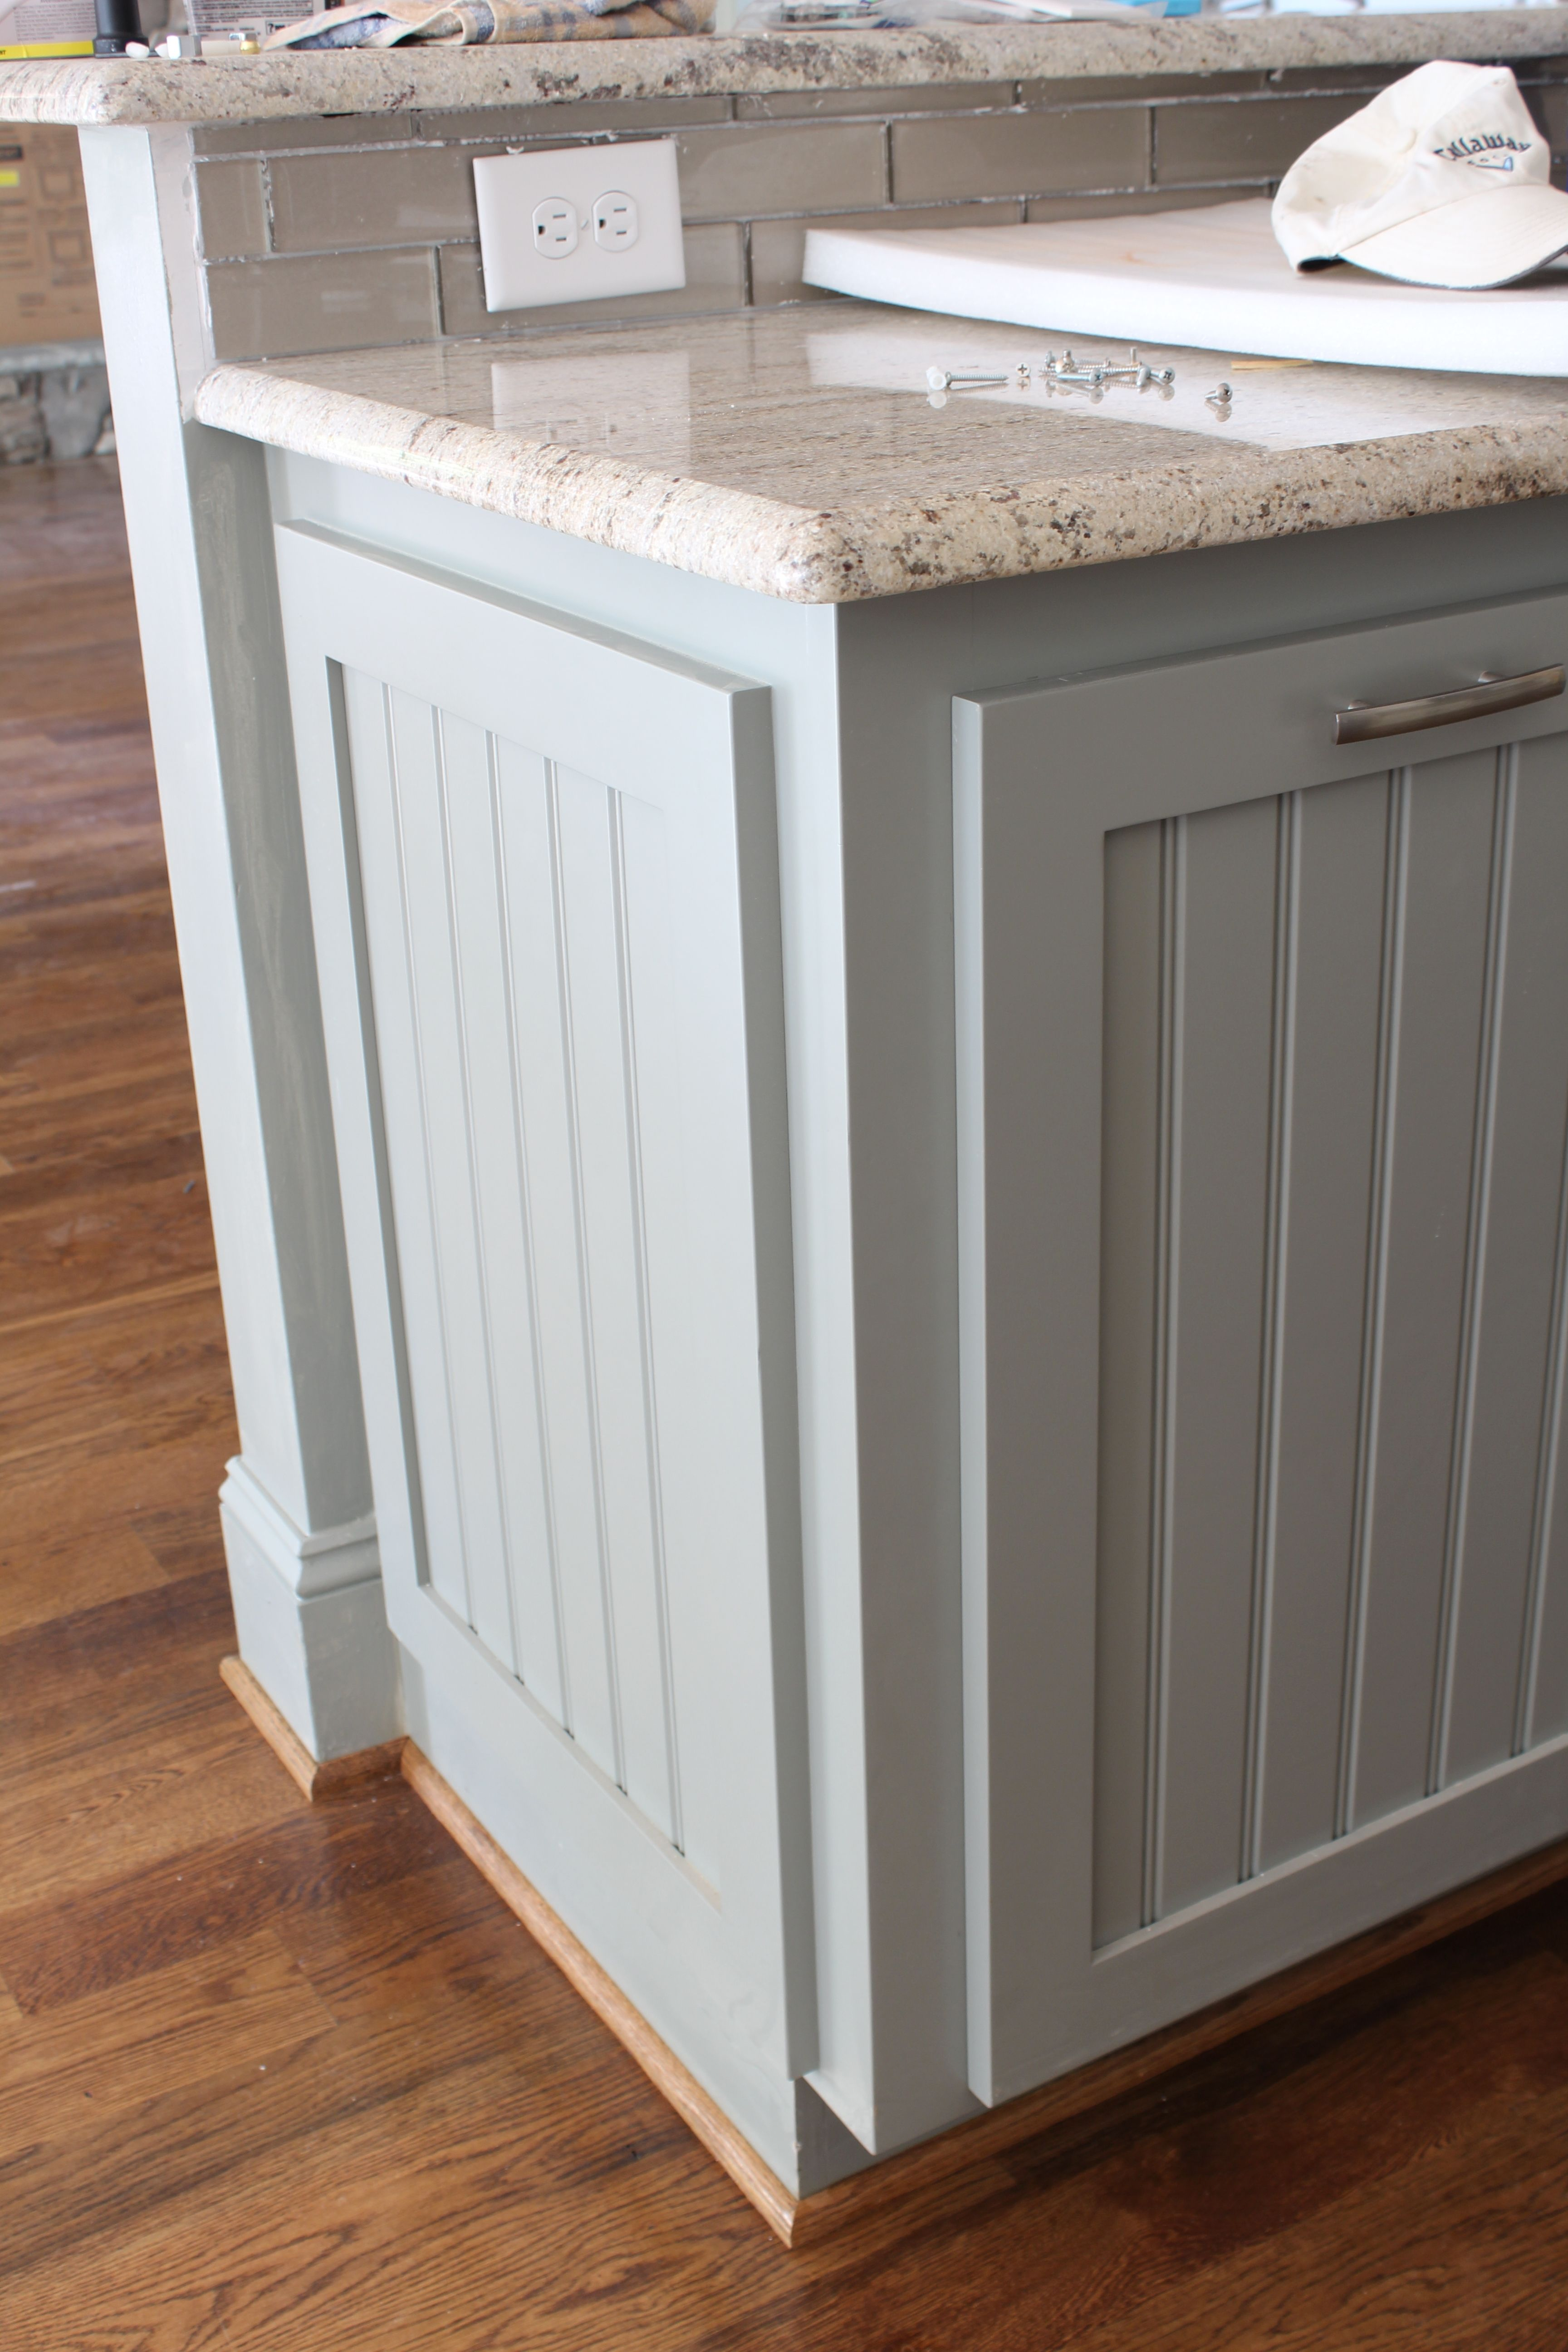 sherwin williams silver strand - google search | cabinet paint